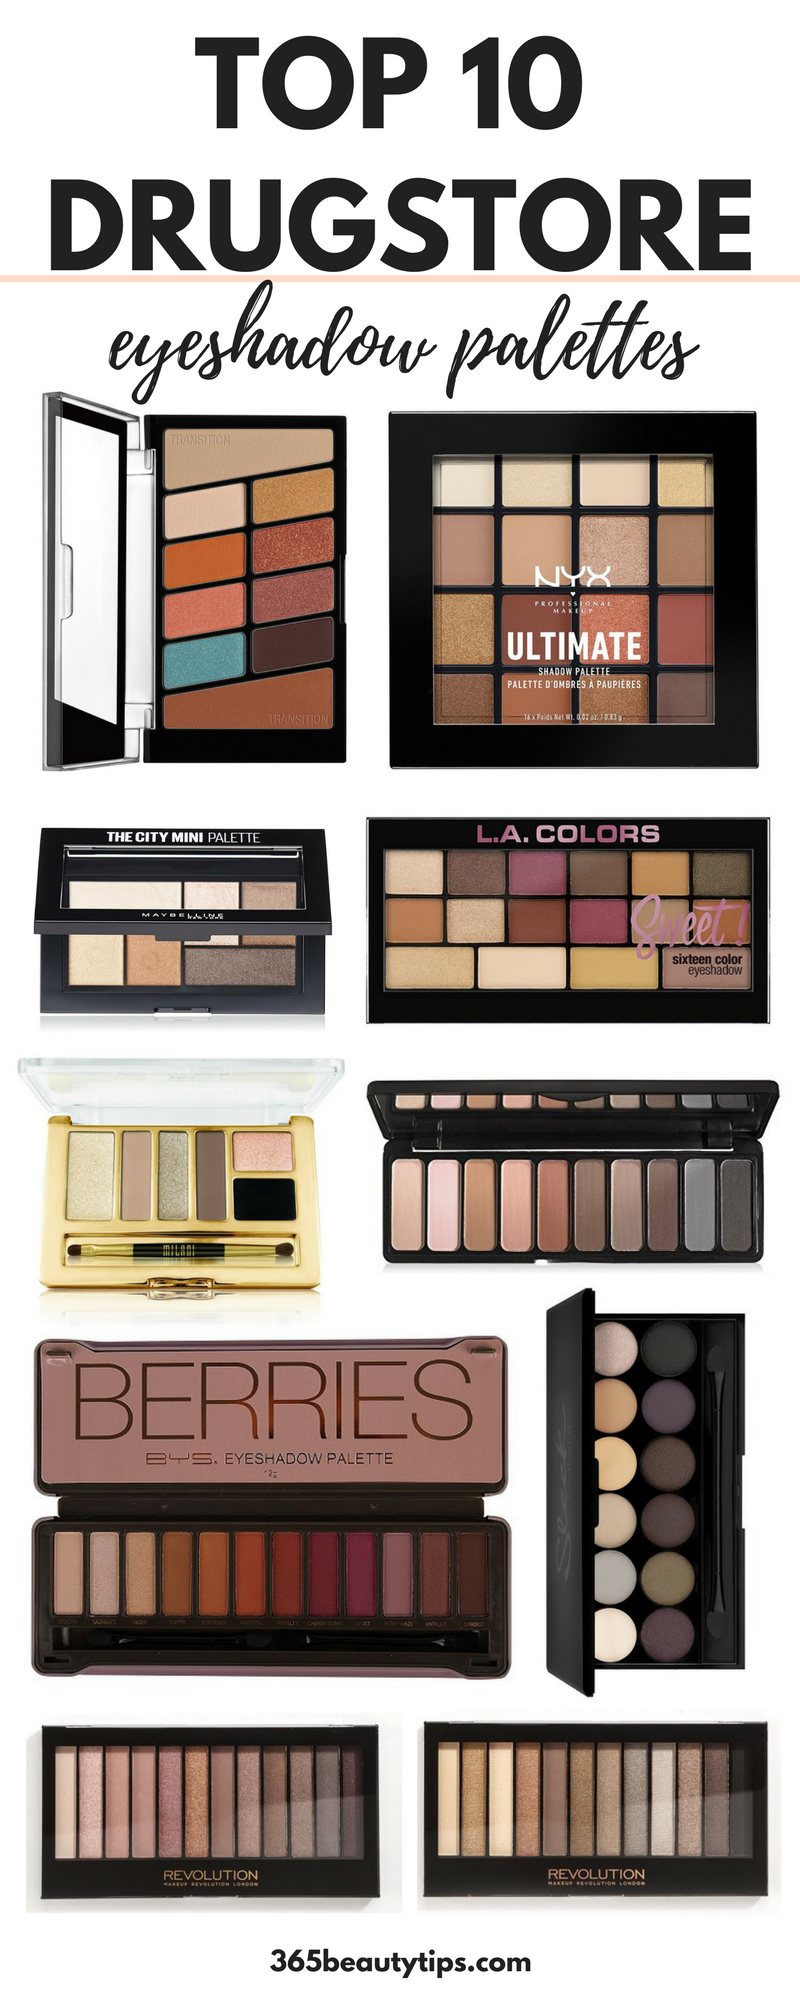 The Best Drugstore Eyeshadow Palettes 365beautytips Drugstore Eyeshadow Drugstore Eyeshadow Palette Best Drugstore Eyeshadow